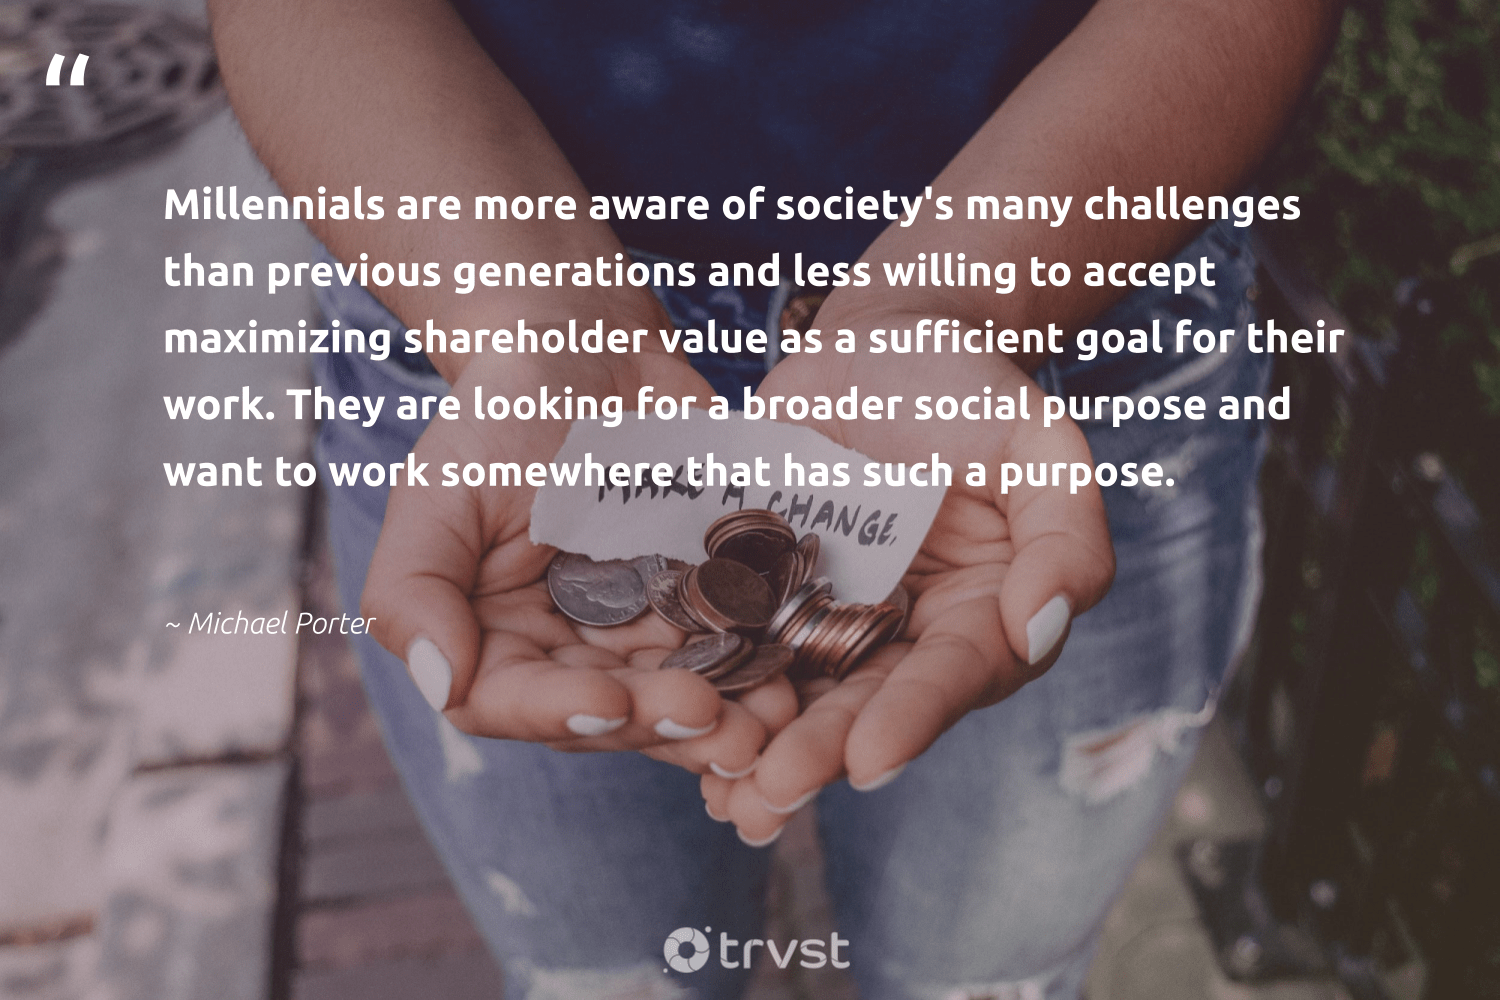 """""""Millennials are more aware of society's many challenges than previous generations and less willing to accept maximizing shareholder value as a sufficient goal for their work. They are looking for a broader social purpose and want to work somewhere that has such a purpose.""""  - Michael Porter #trvst #quotes #purpose #findingpupose #giveback #mindset #impact #findpurpose #makeadifference #begreat #beinspired #purposedriven"""